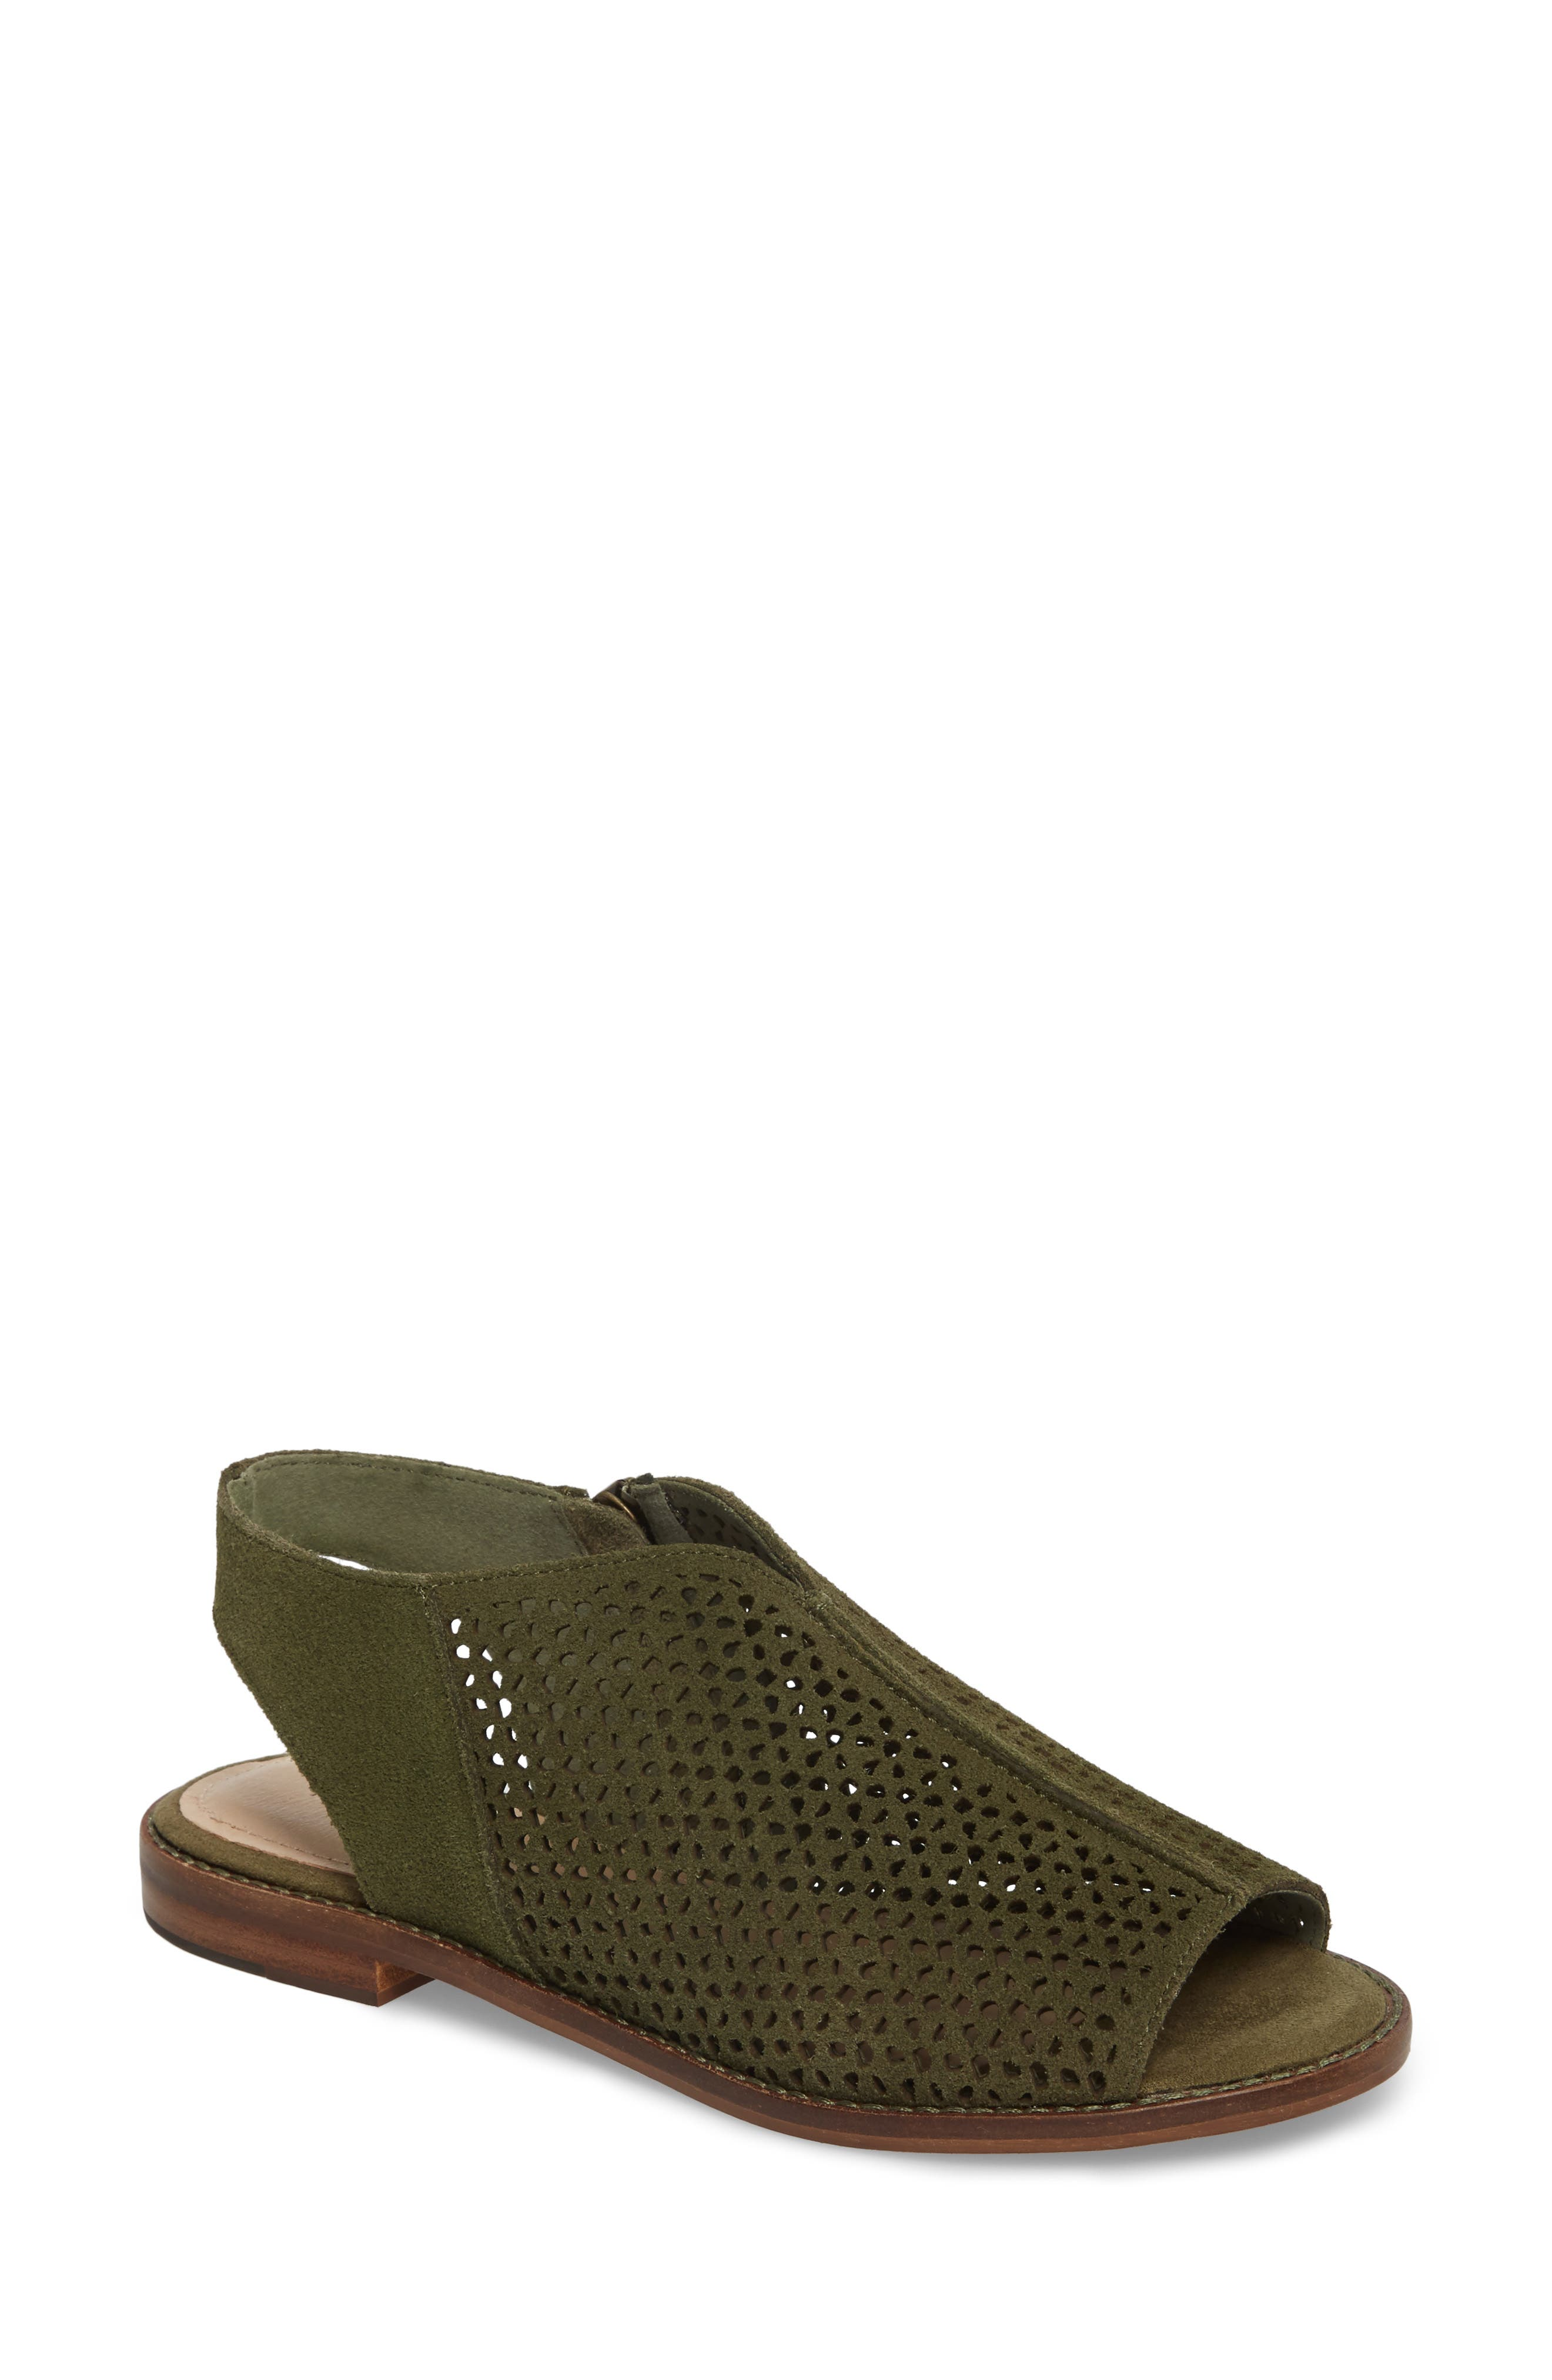 Seneca Perforated Sandal,                             Main thumbnail 1, color,                             Olive